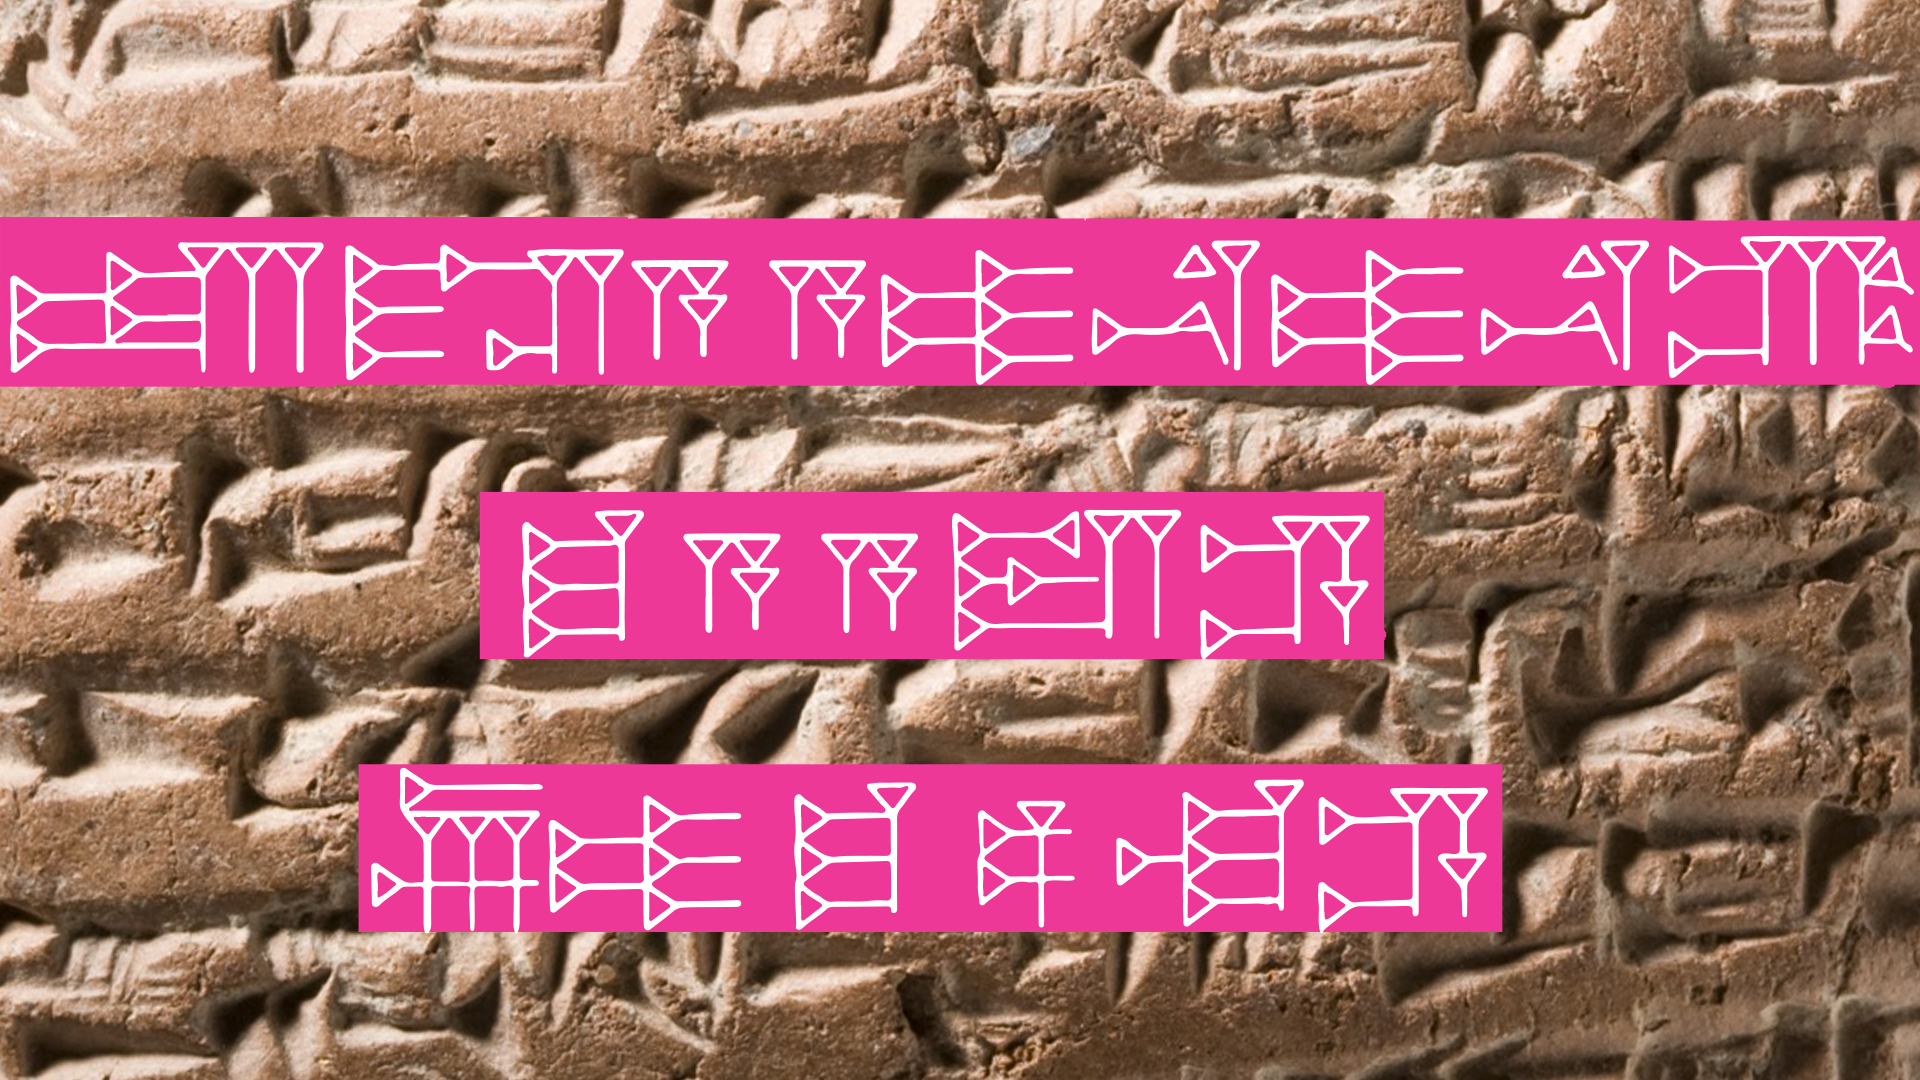 Training Made Simple in the Babylonian Cuneiform Alphabet